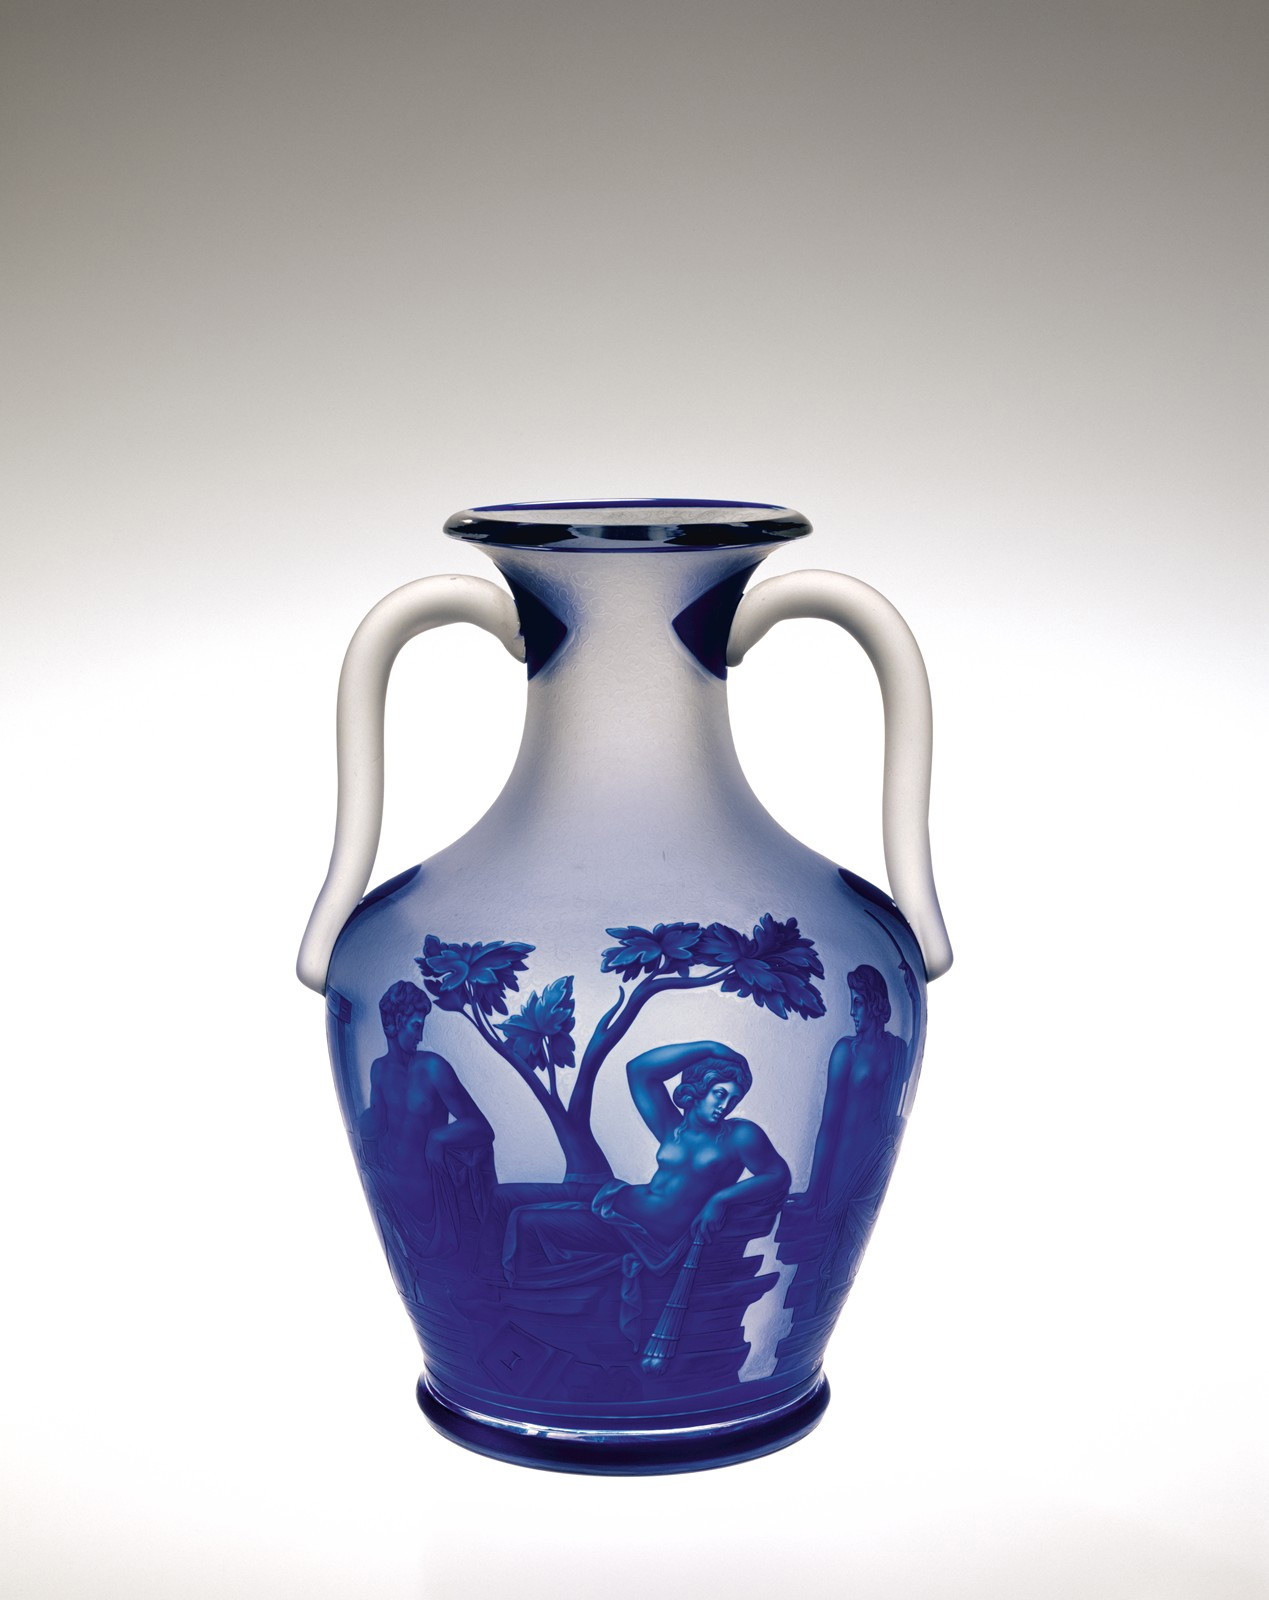 All about glass corning museum of glass copy of the portland vase franz paul zach 1862 collection of the corning museum of glass 92379 reviewsmspy